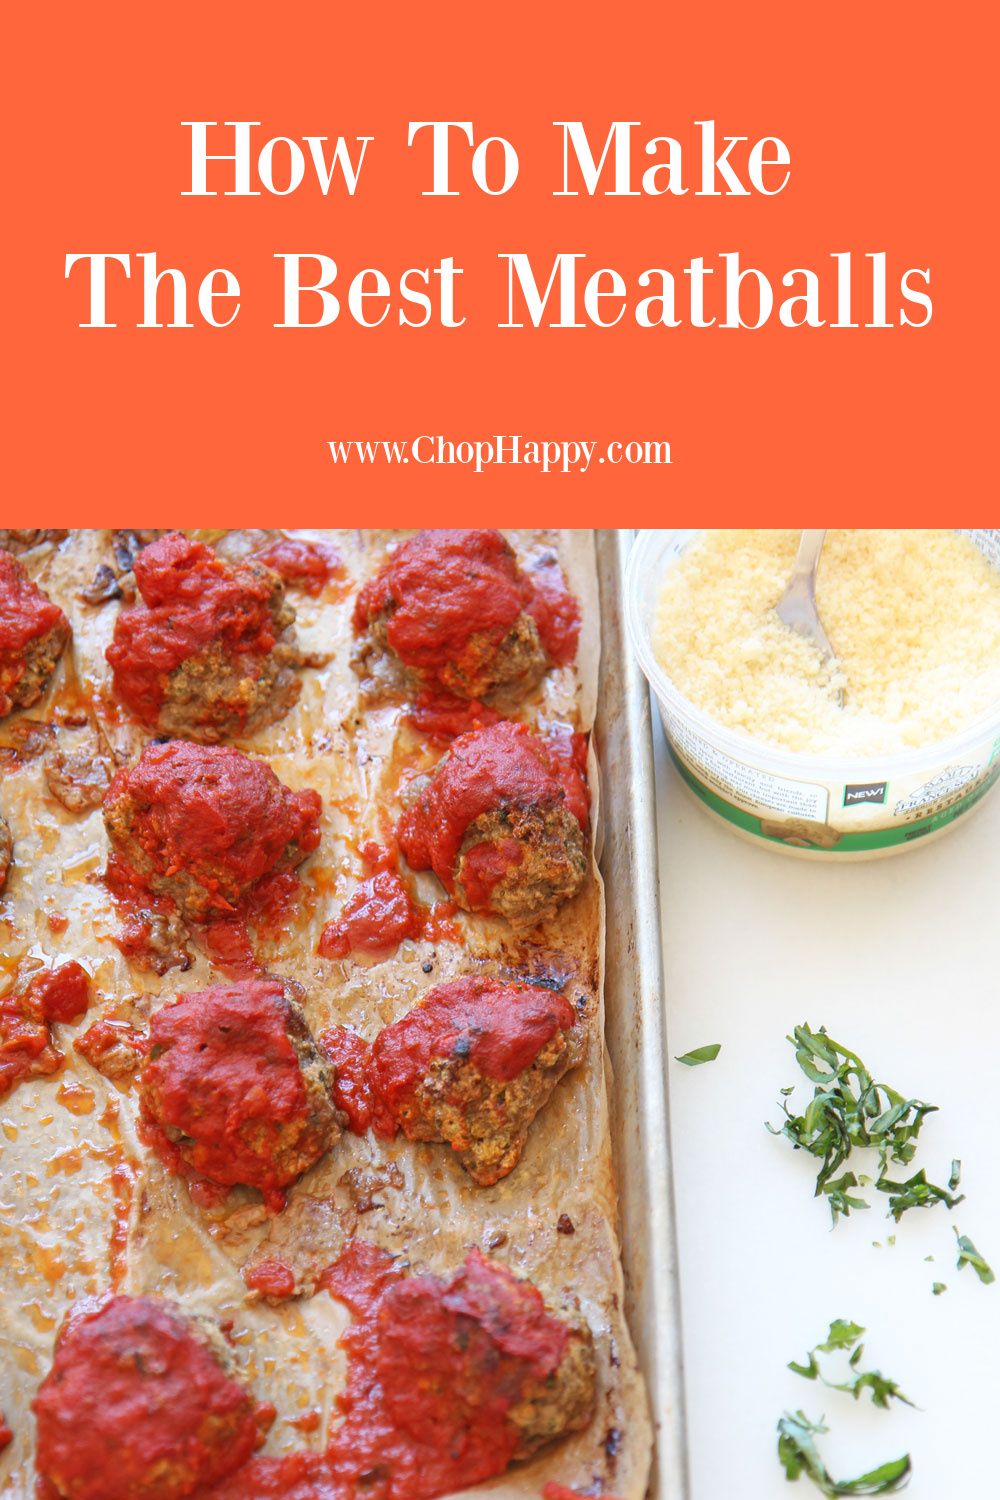 How to Make The Best Meatballs. No matter if chicken meatballs, turkey meatballs, eggplant meatballs, or Italian meatballs. Happy Cooking! www.chophappy.com #meatballs #howtomakemeatballs